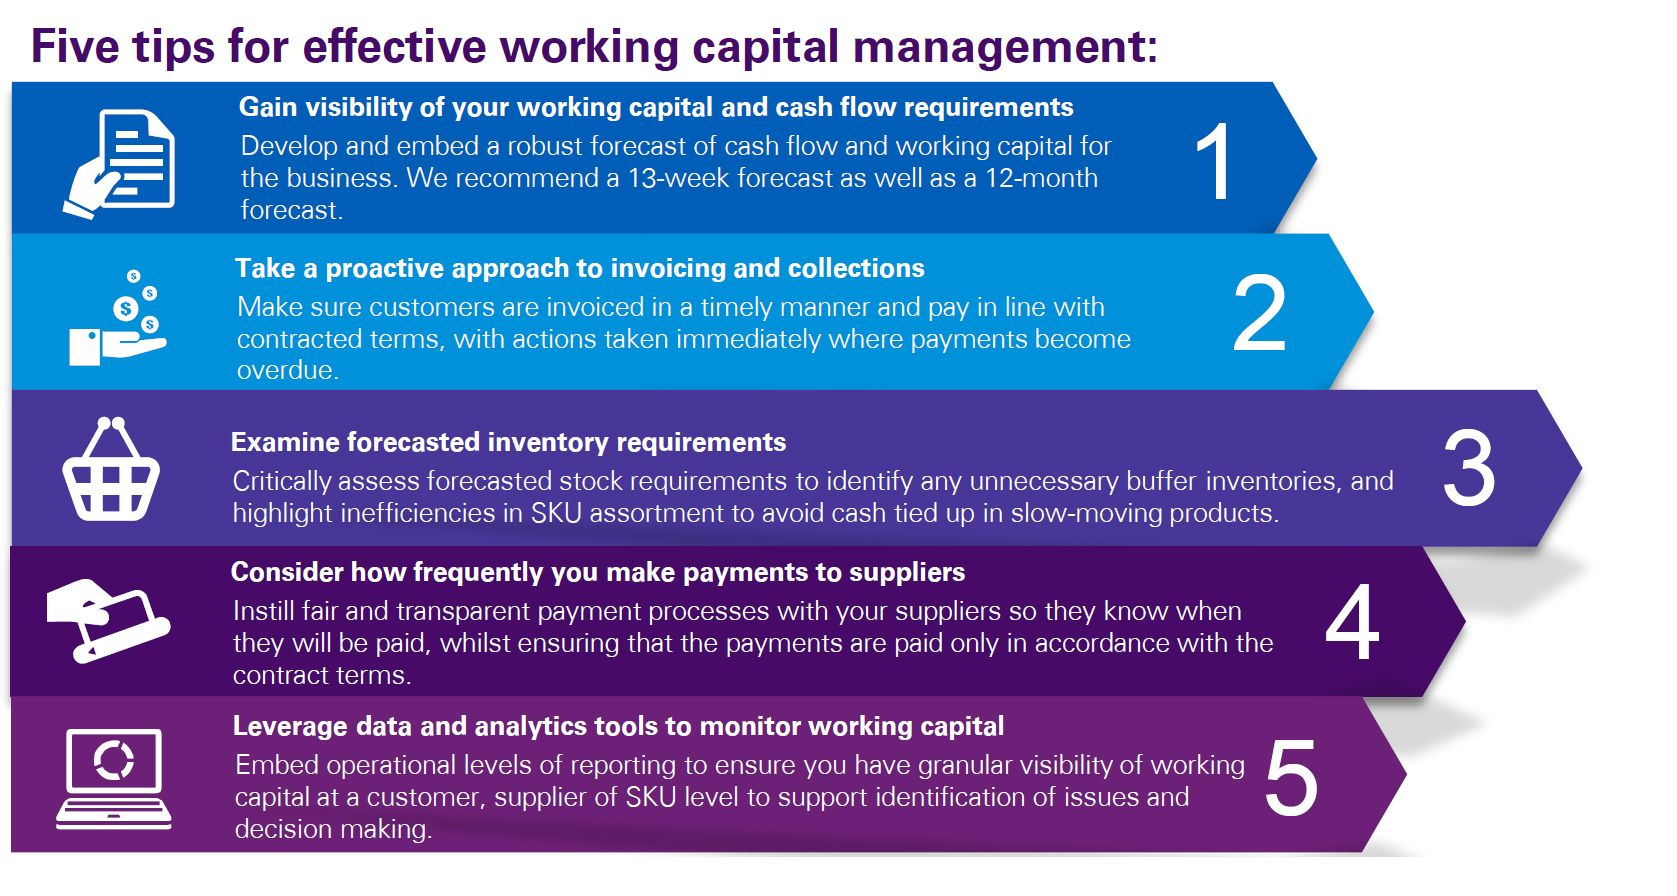 Five tips for effective working capital management